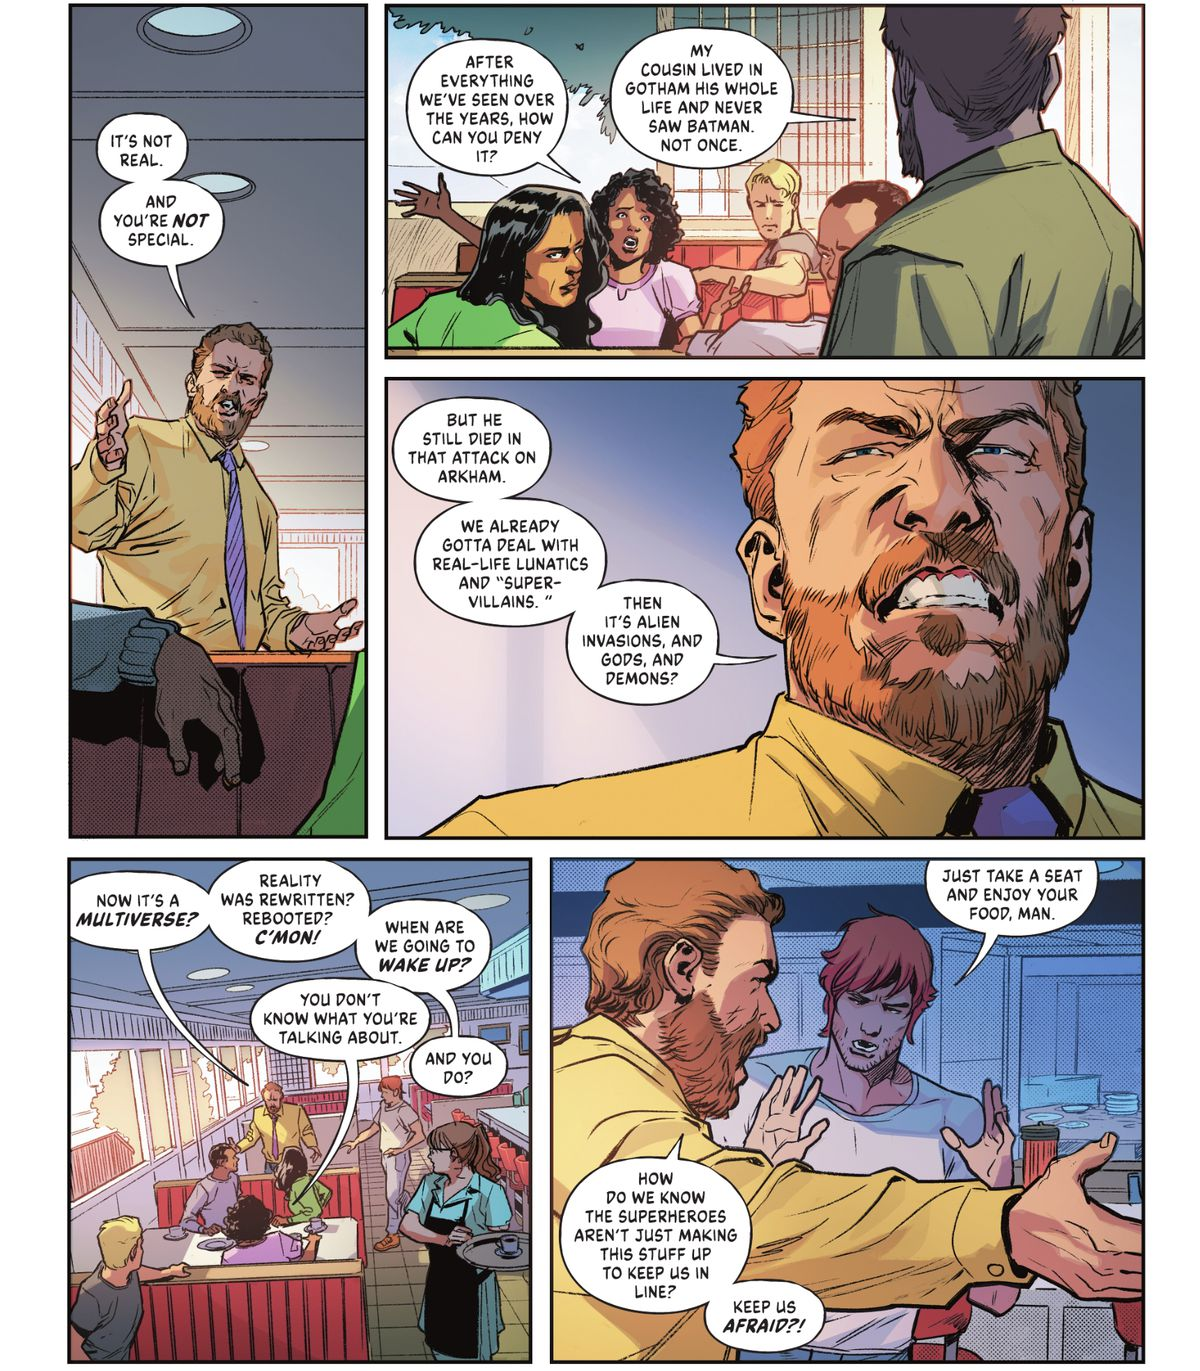 """A man in a diner goes on an anti-superhero rant, claiming that the """"multiverse"""" is an idea they made up despite many people remembering the last Crisis Event in Infinite Frontier #1 (2021)."""